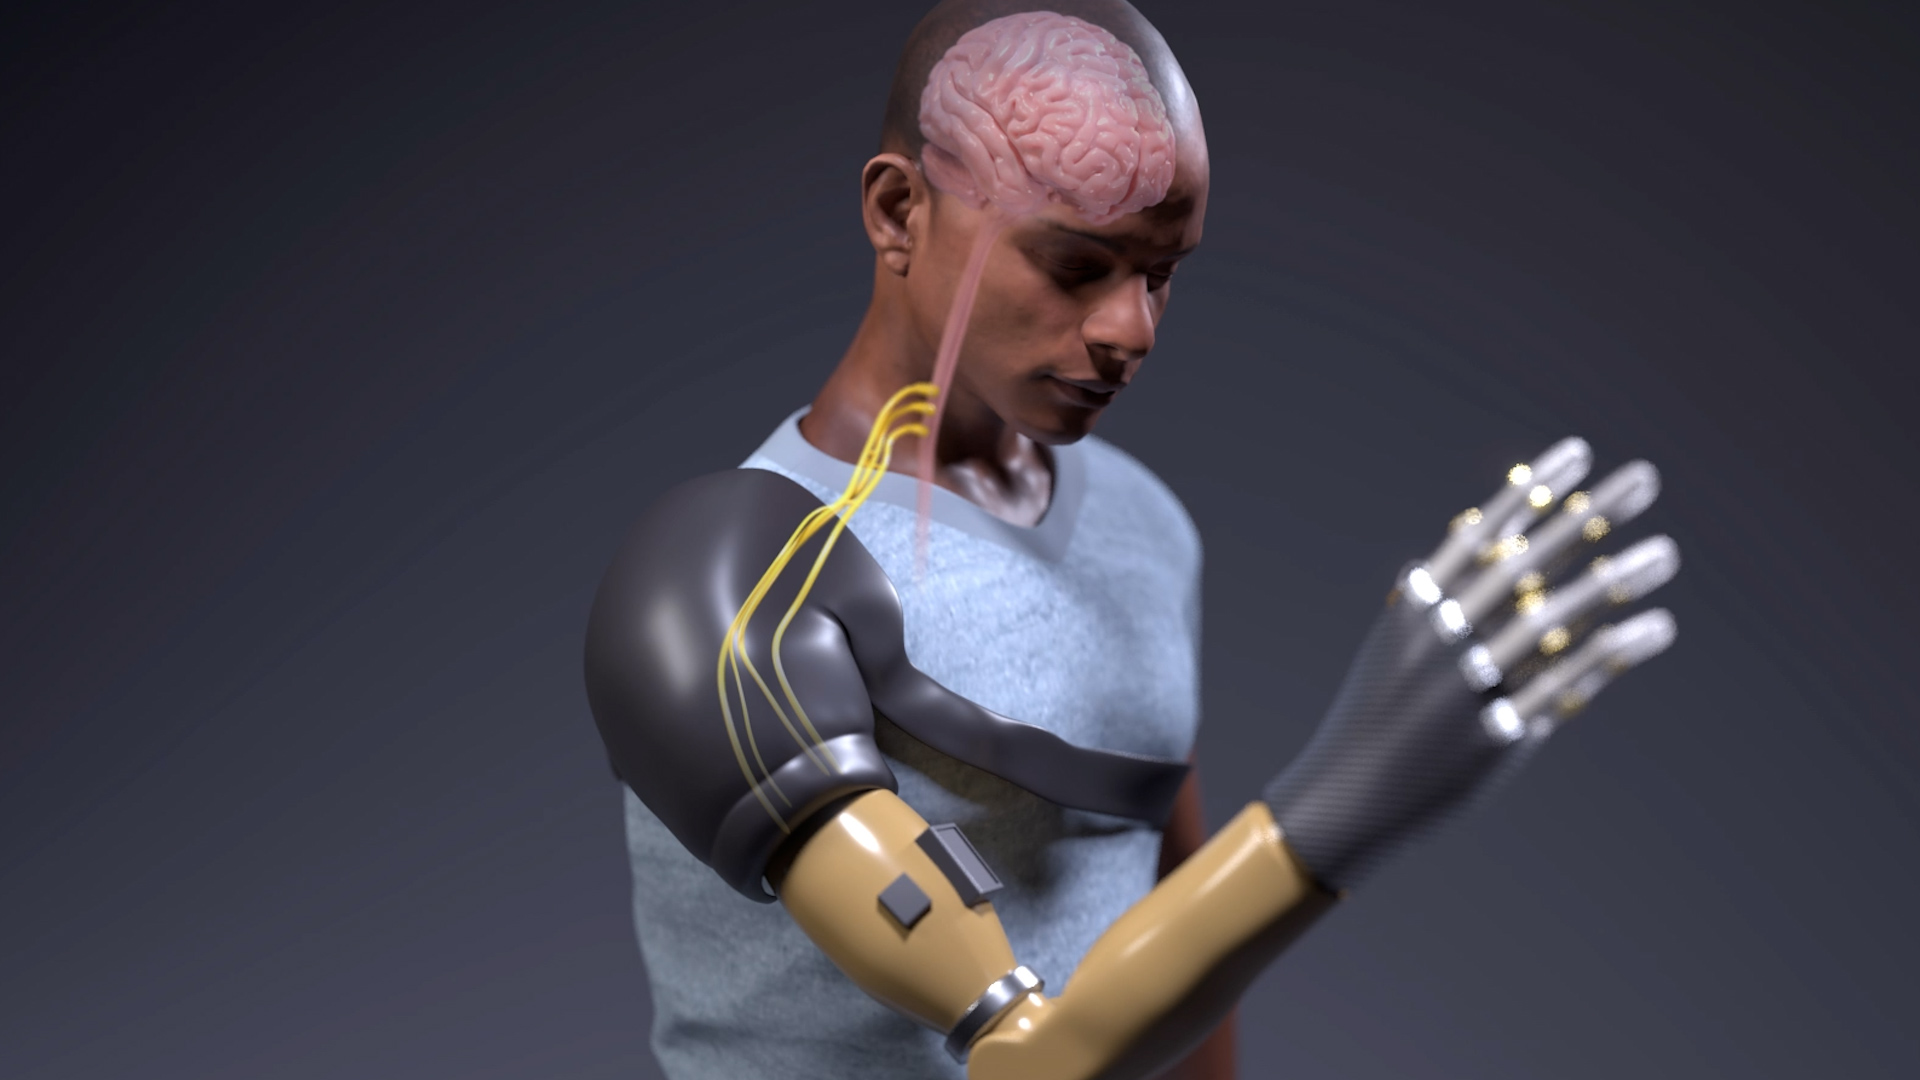 bionic | Futuristic bionic arm helps amputees feel the sensation of touch and movement | The Paradise